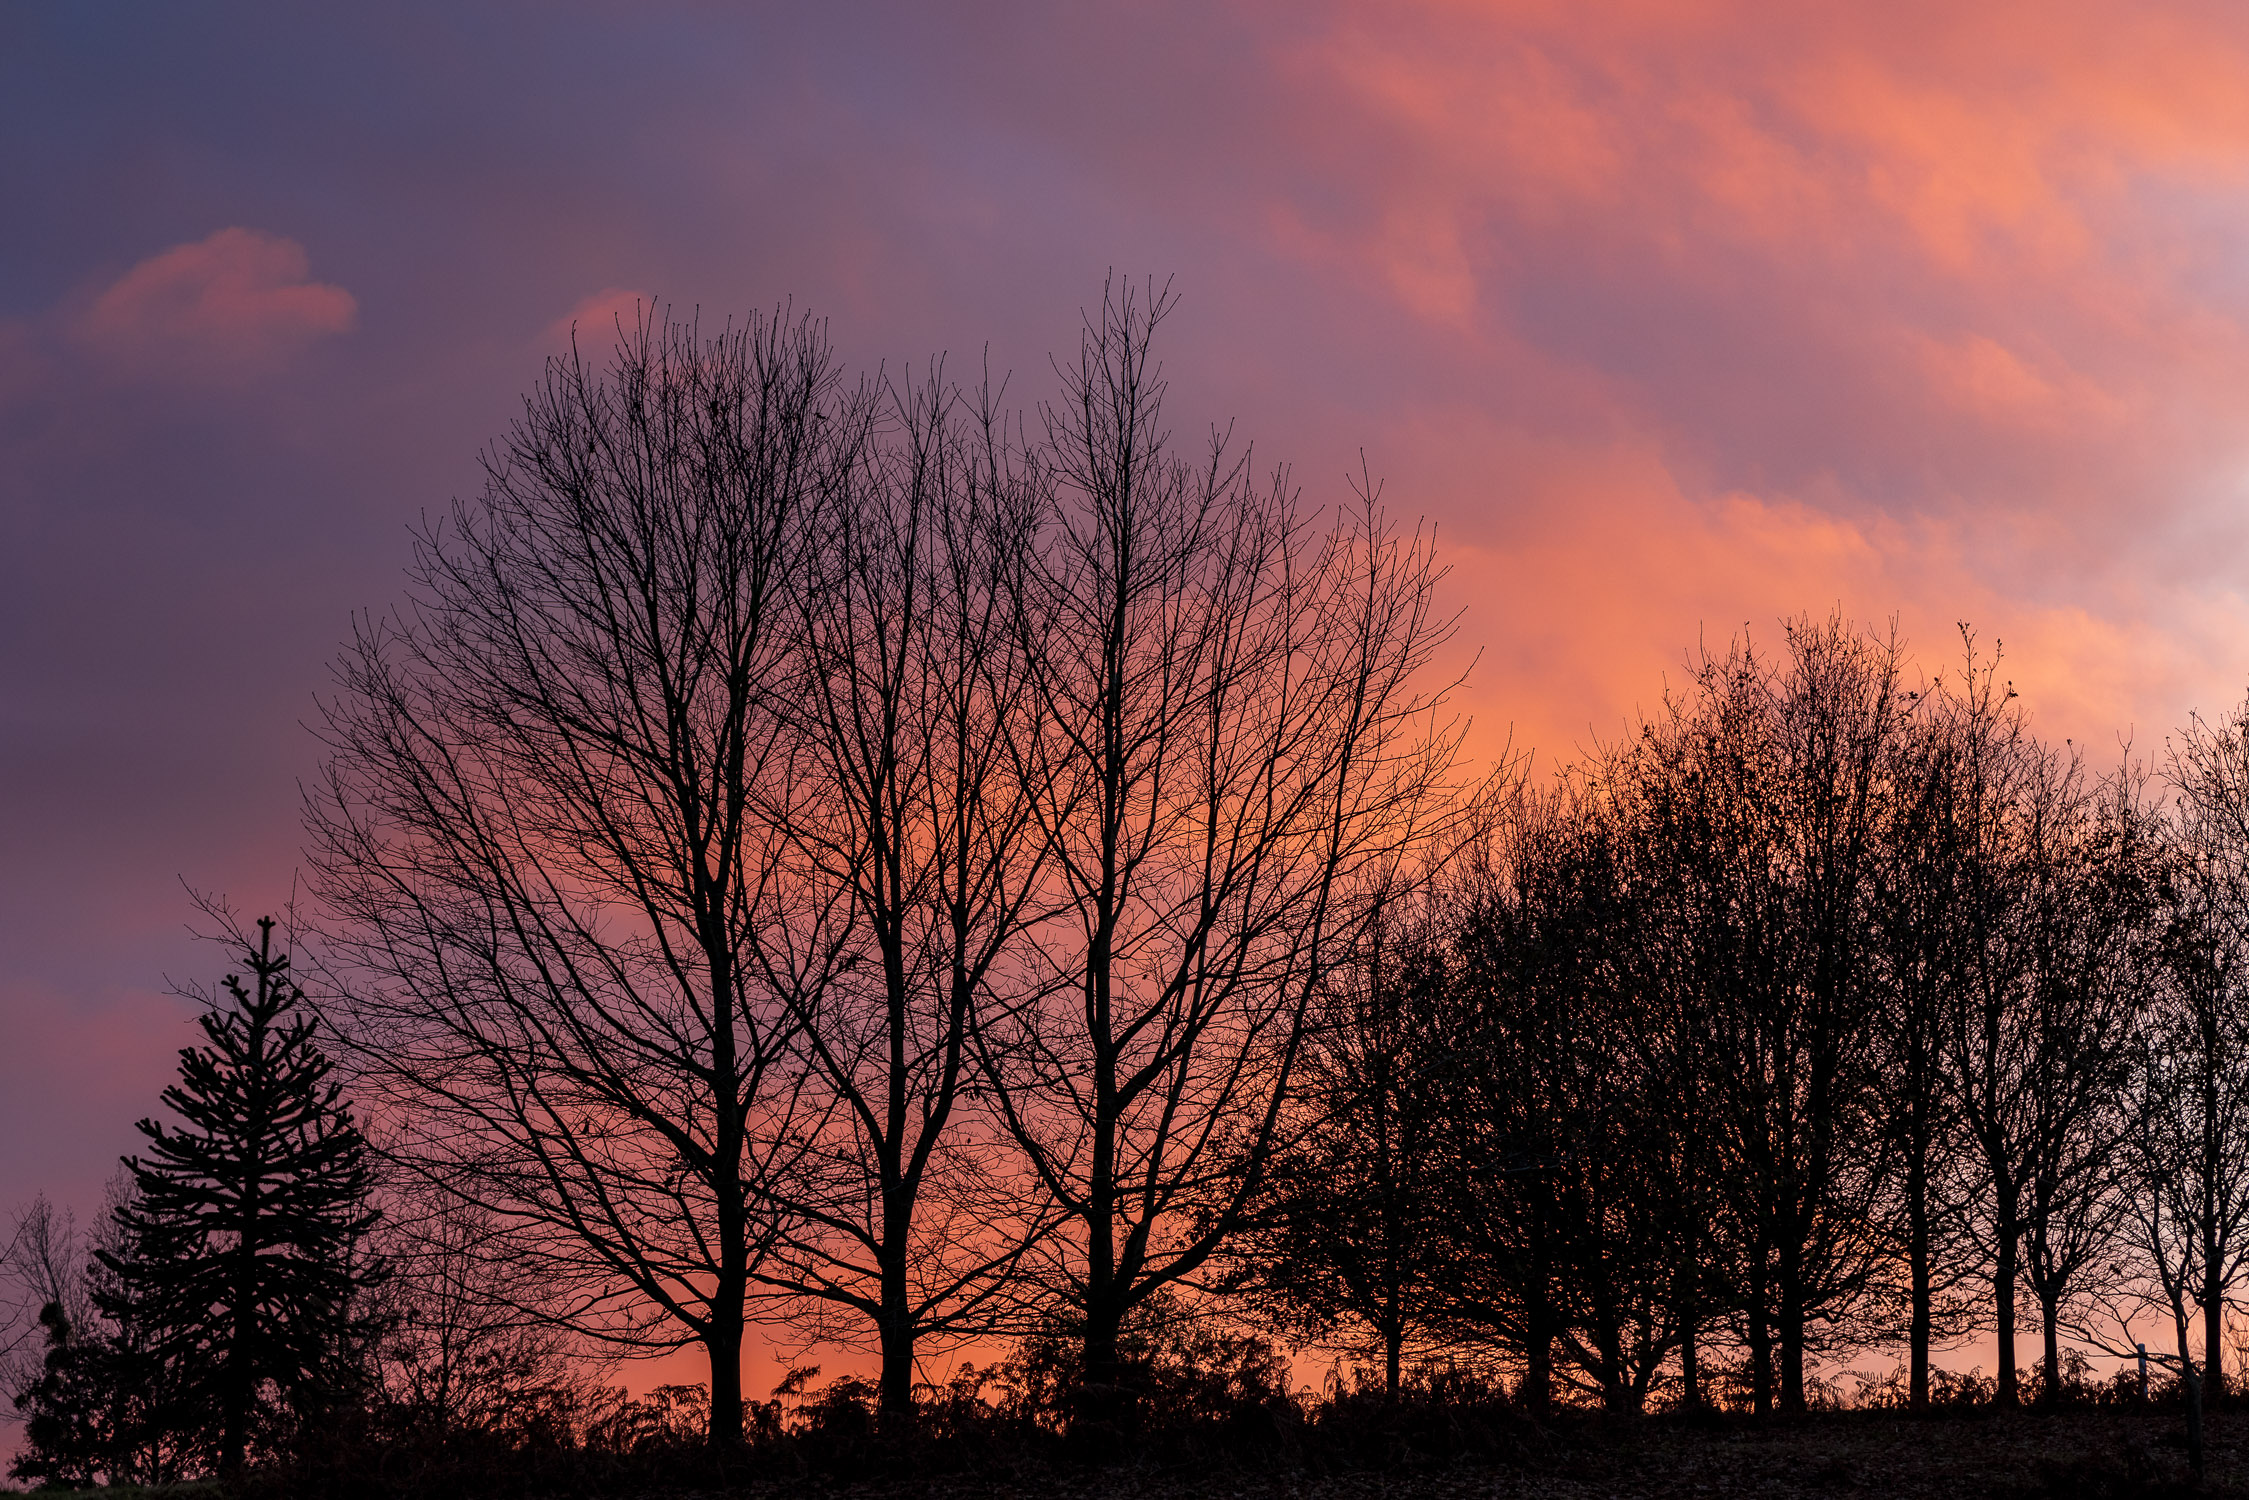 Trees silhouetted against a Winter sunset